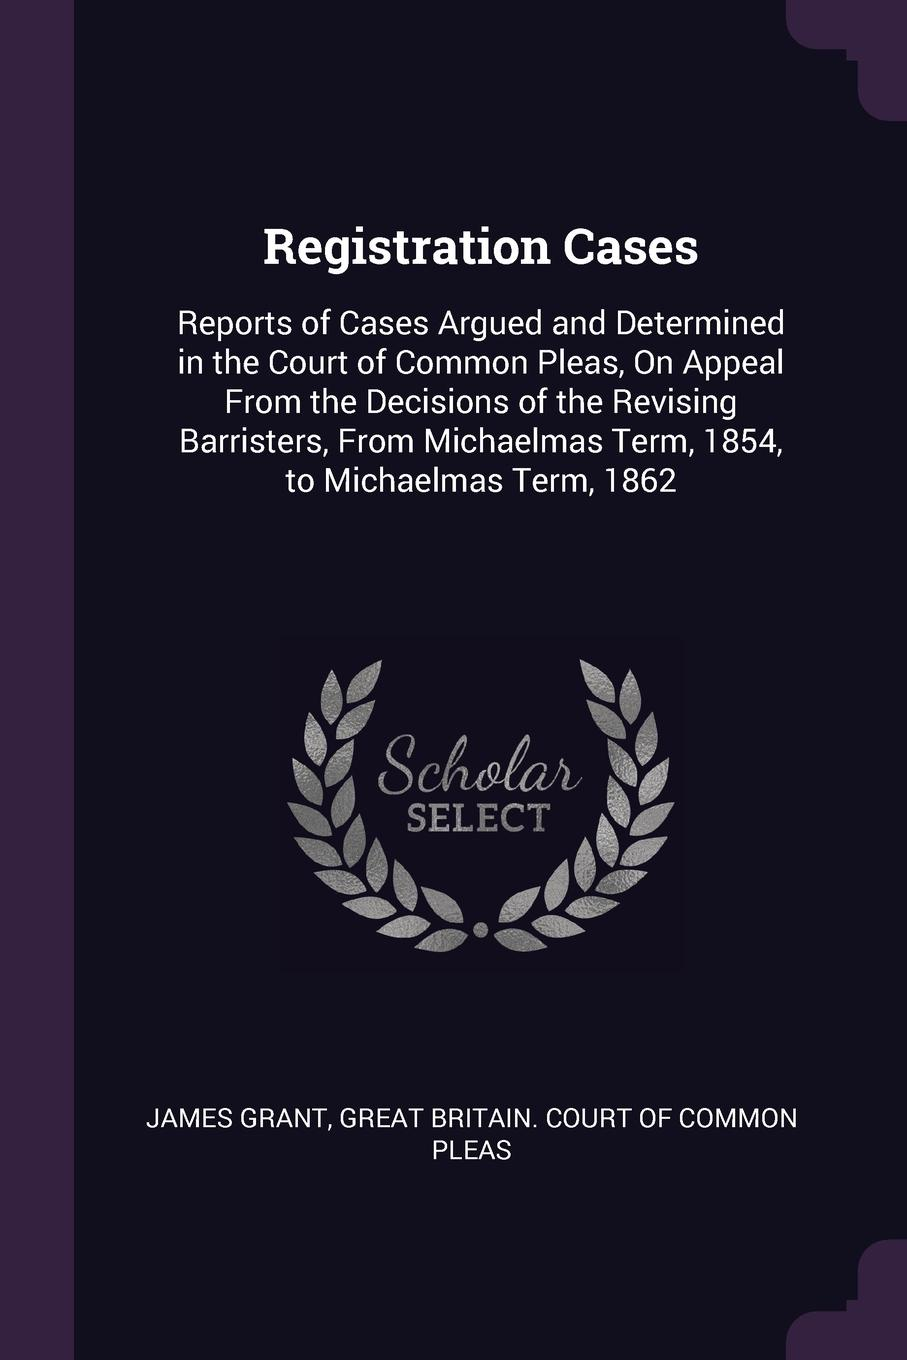 James Grant Registration Cases. Reports of Cases Argued and Determined in the Court Common Pleas, On Appeal From Decisions Revising Barristers, Michaelmas Term, 1854, to 1862